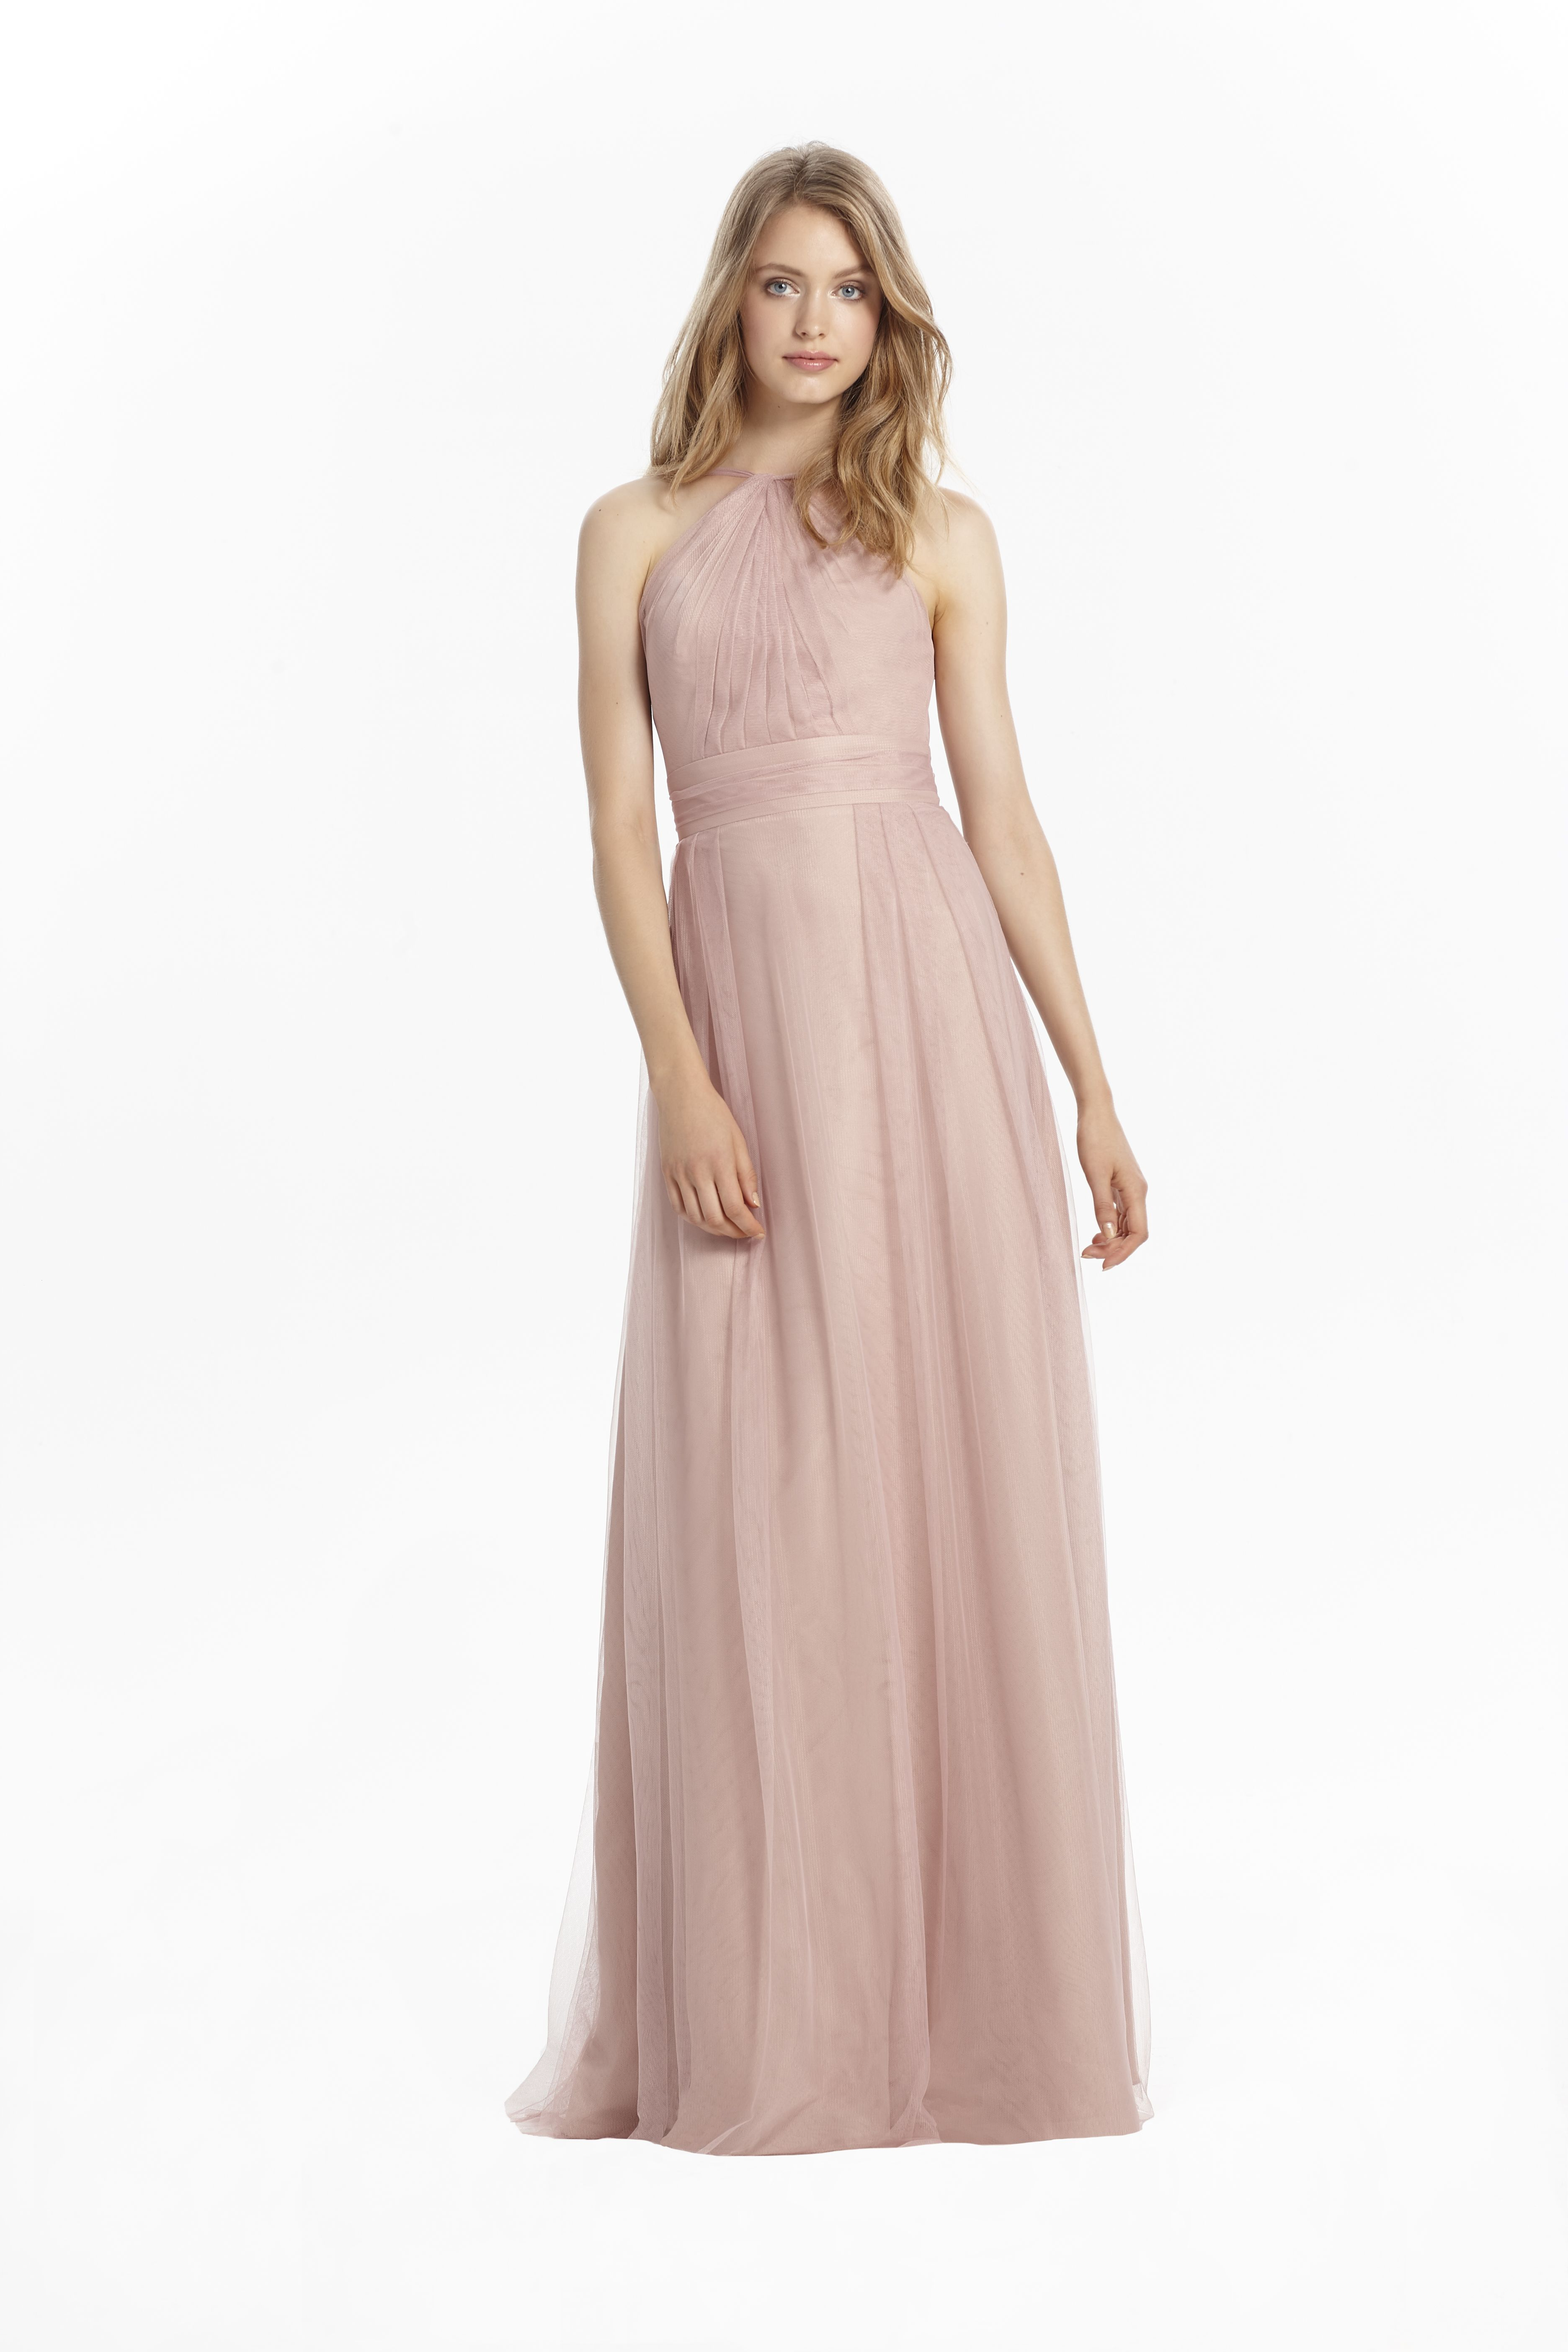 Emery 450466 | Bridesmaids and Flowergirls: Dresses, Shoes, and ...